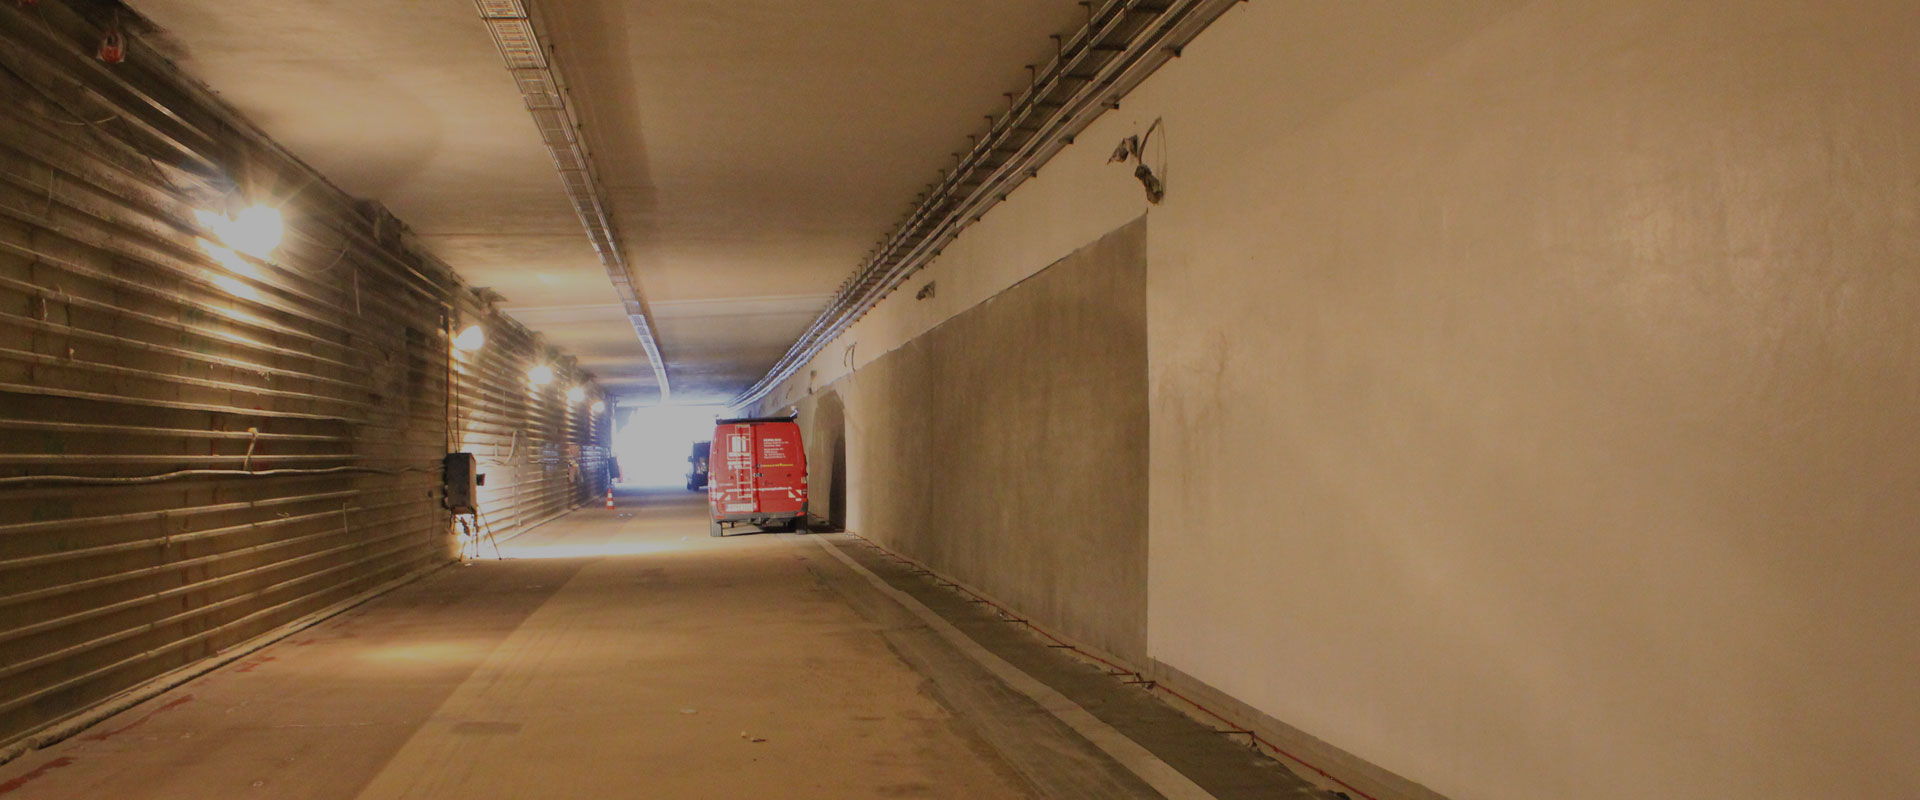 Structural fire protection in a motorway tunnel in Cologne